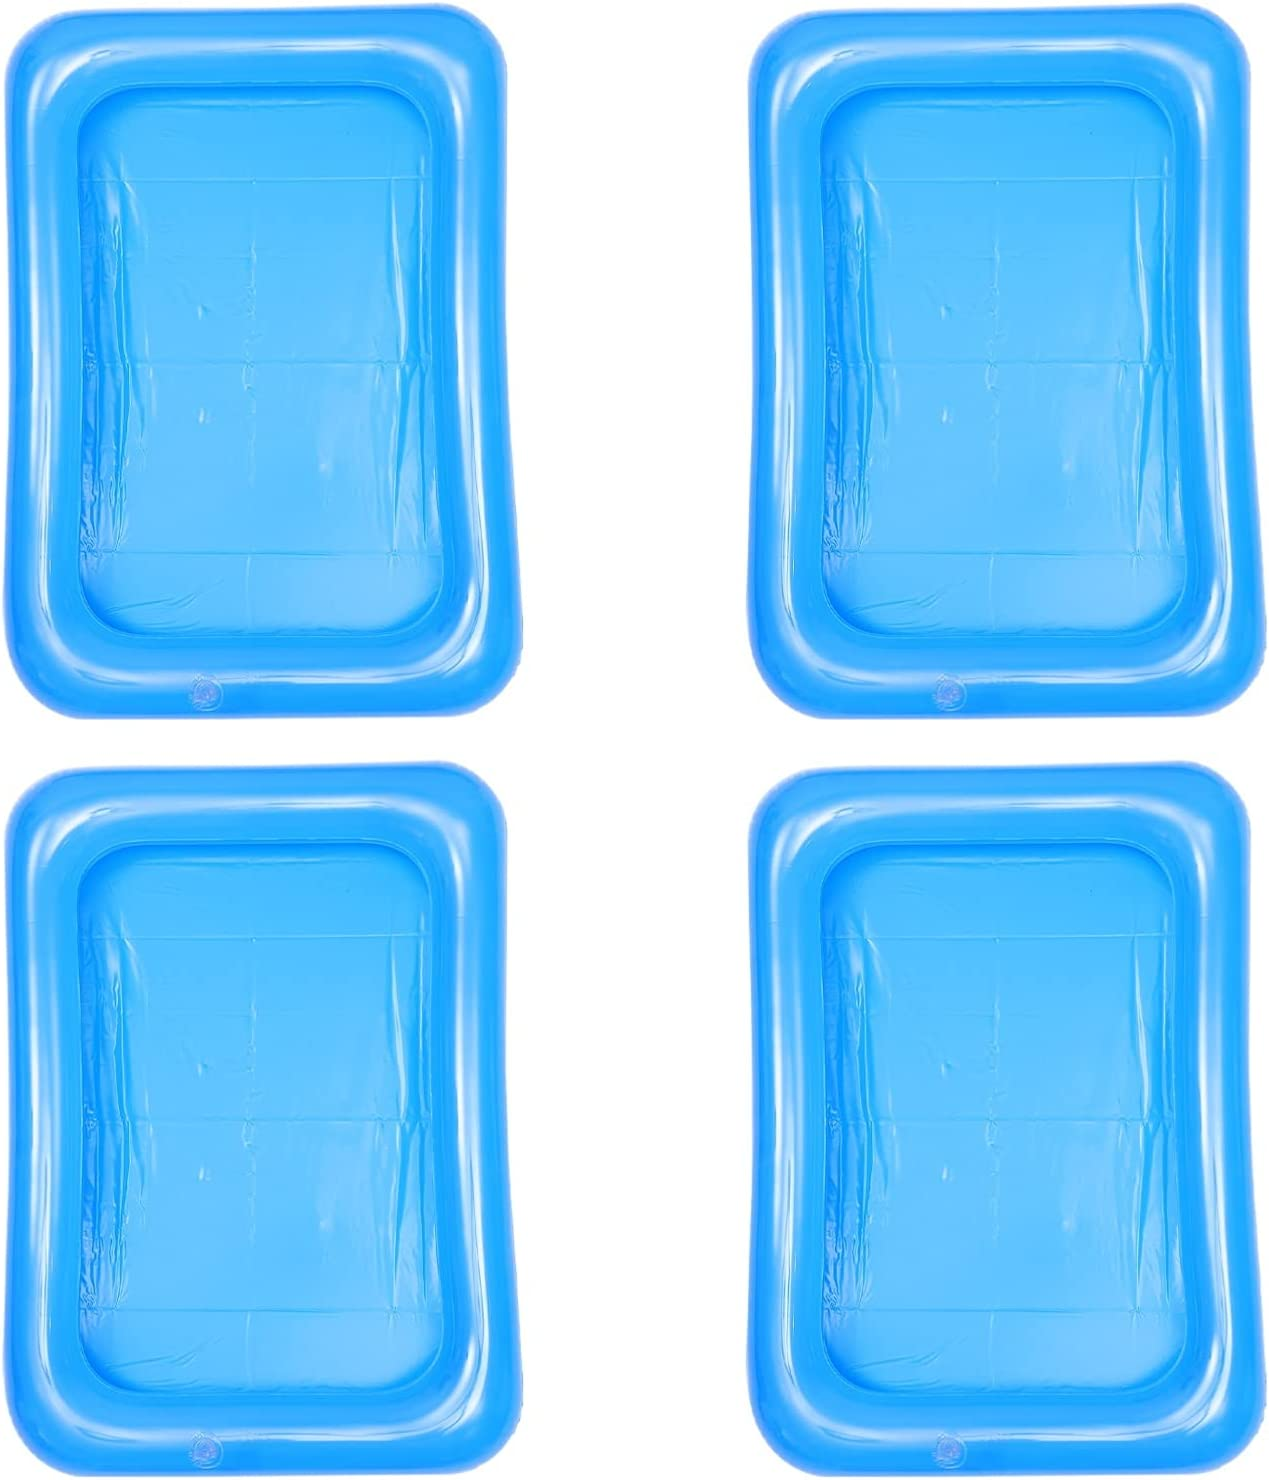 Yardwe Inflatable Ice Serving Bar Coolers Floating Drink Holder Buffet Server Tray Pool Cup Holders Beach Summer Party Supplies for Beach Pool Sand Indoor Outdoor Party 4Pcs